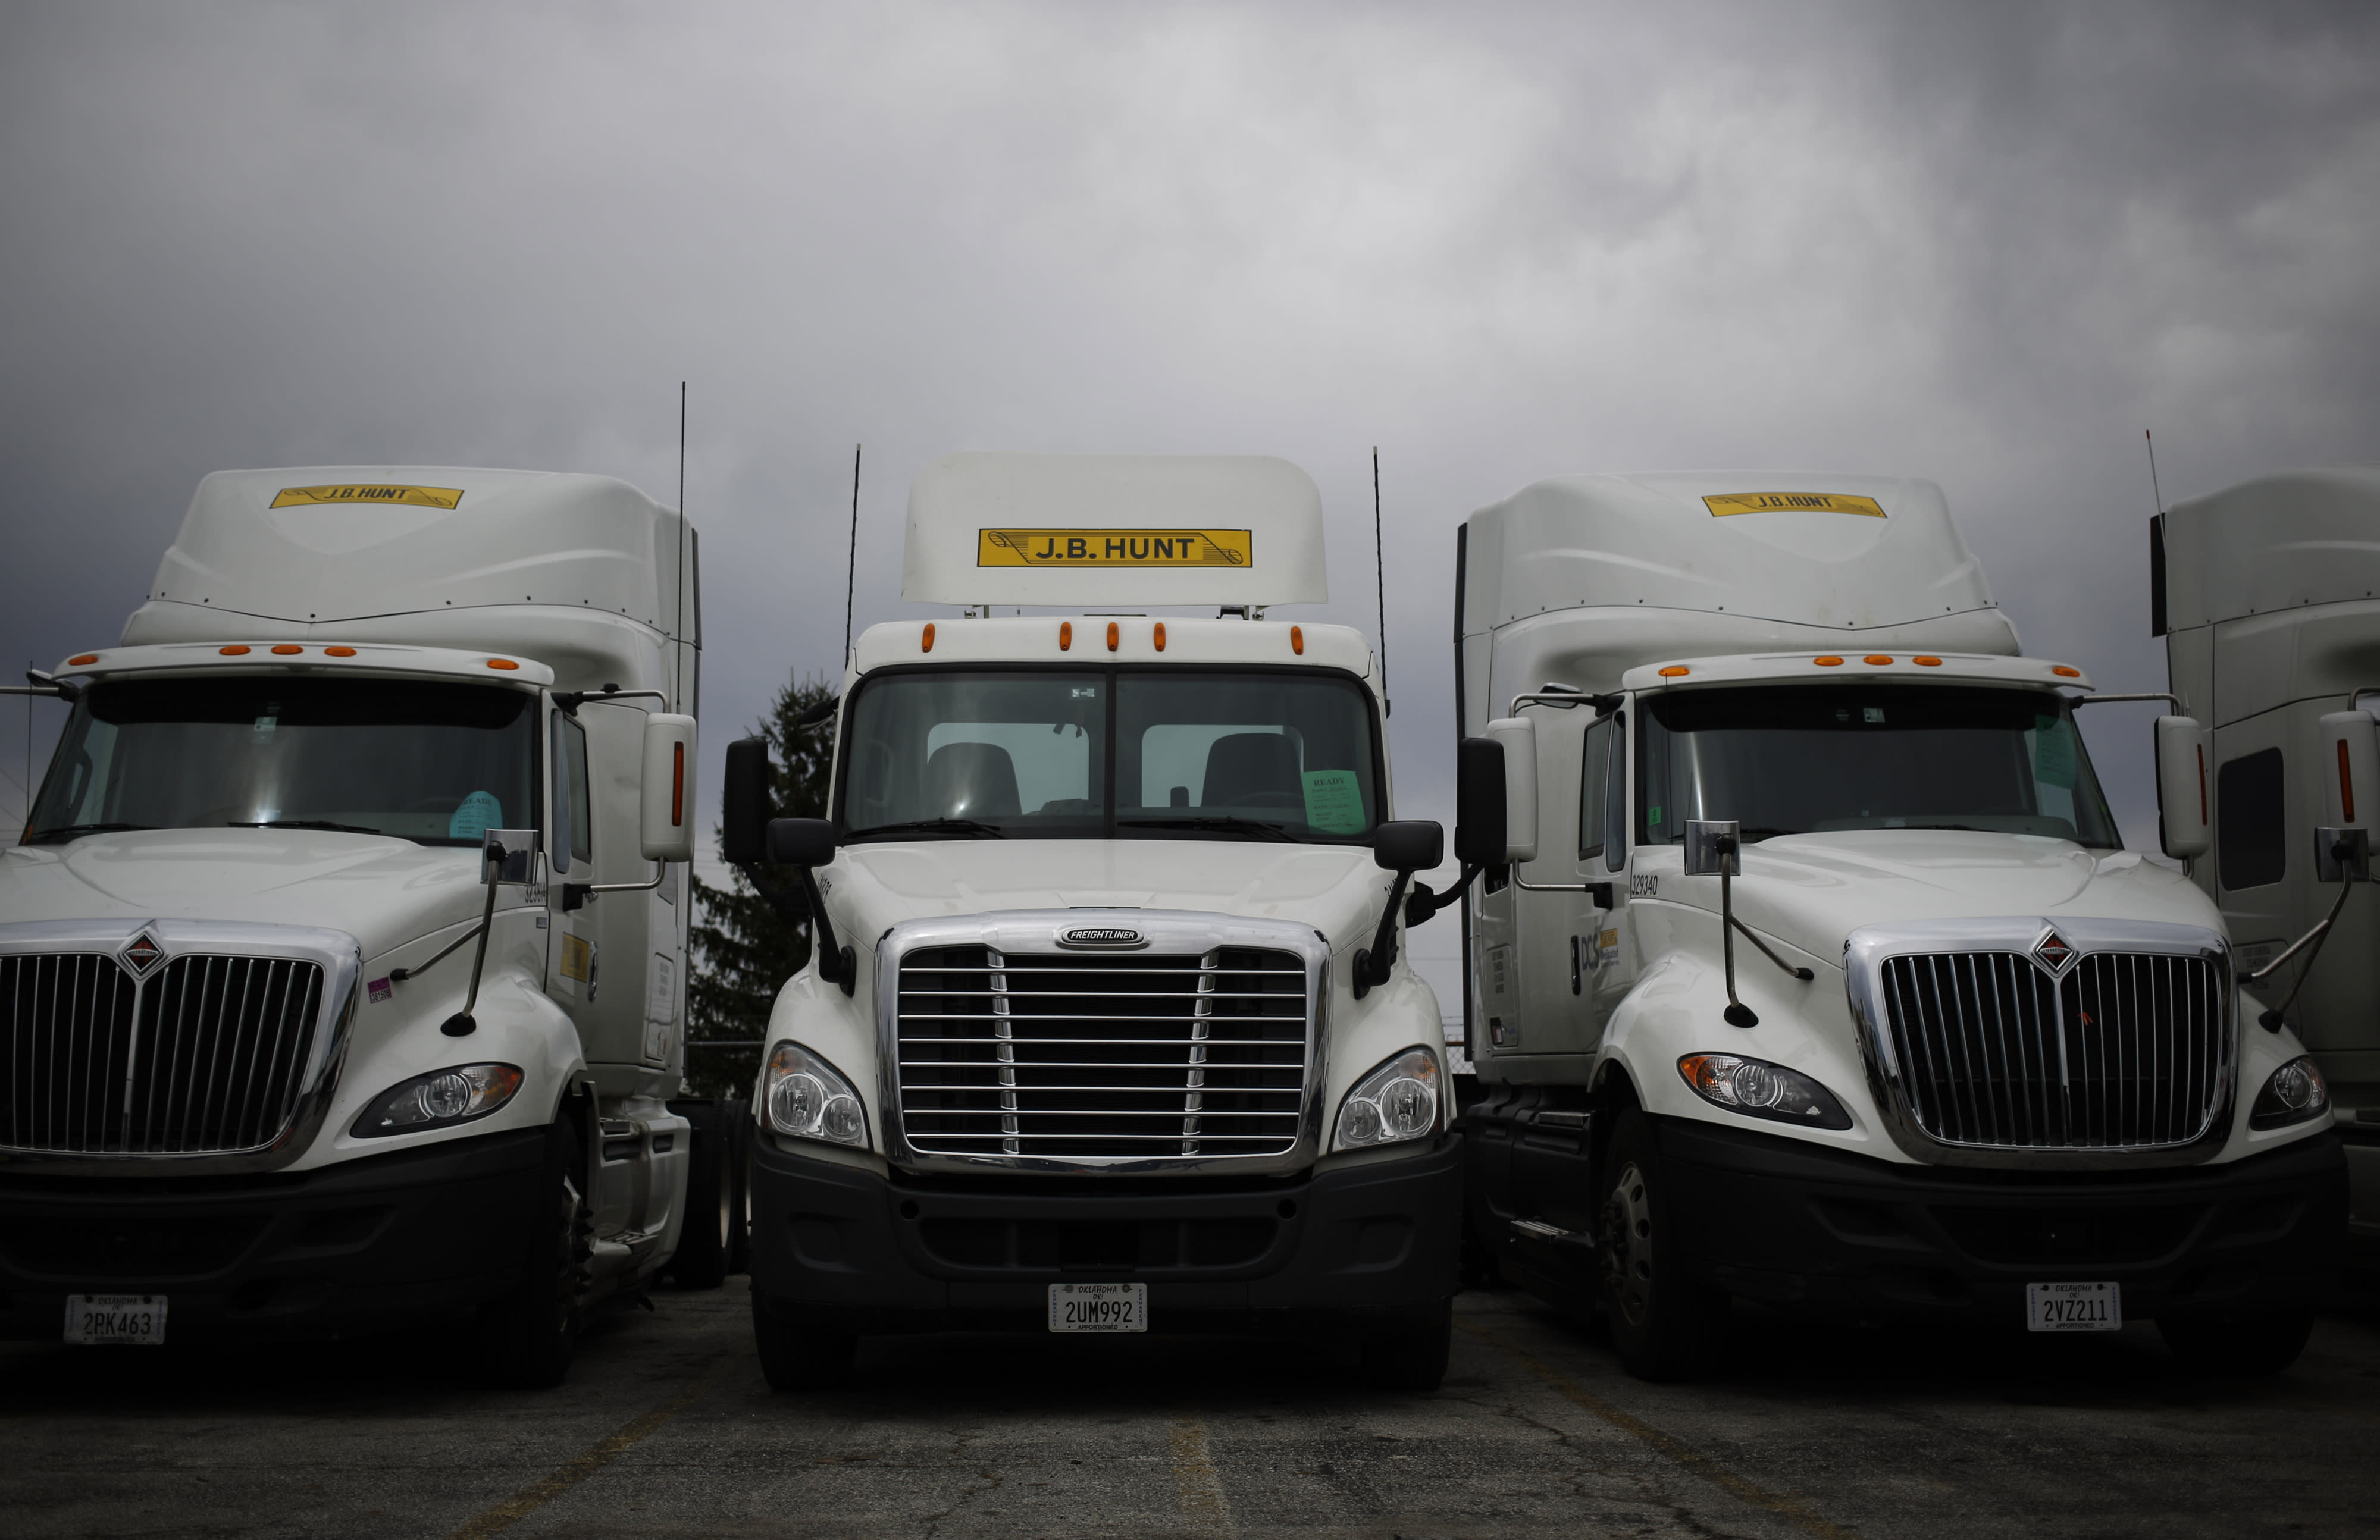 This transport stock holds the key to earnings season